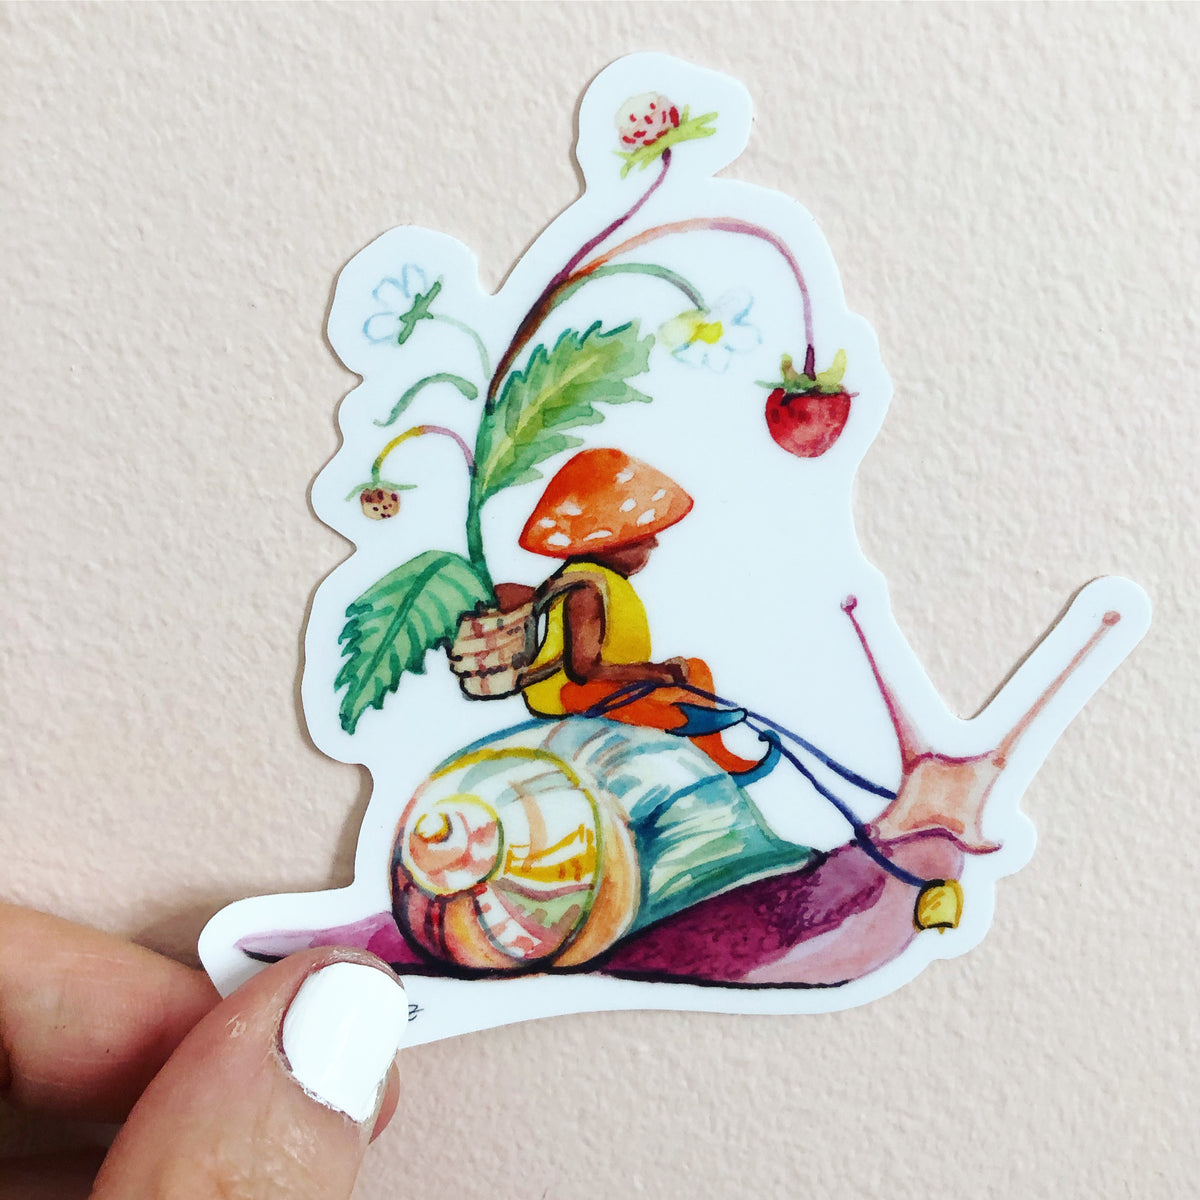 snail gnome sticker, woodland sticker, by Abigail Gray Swartz